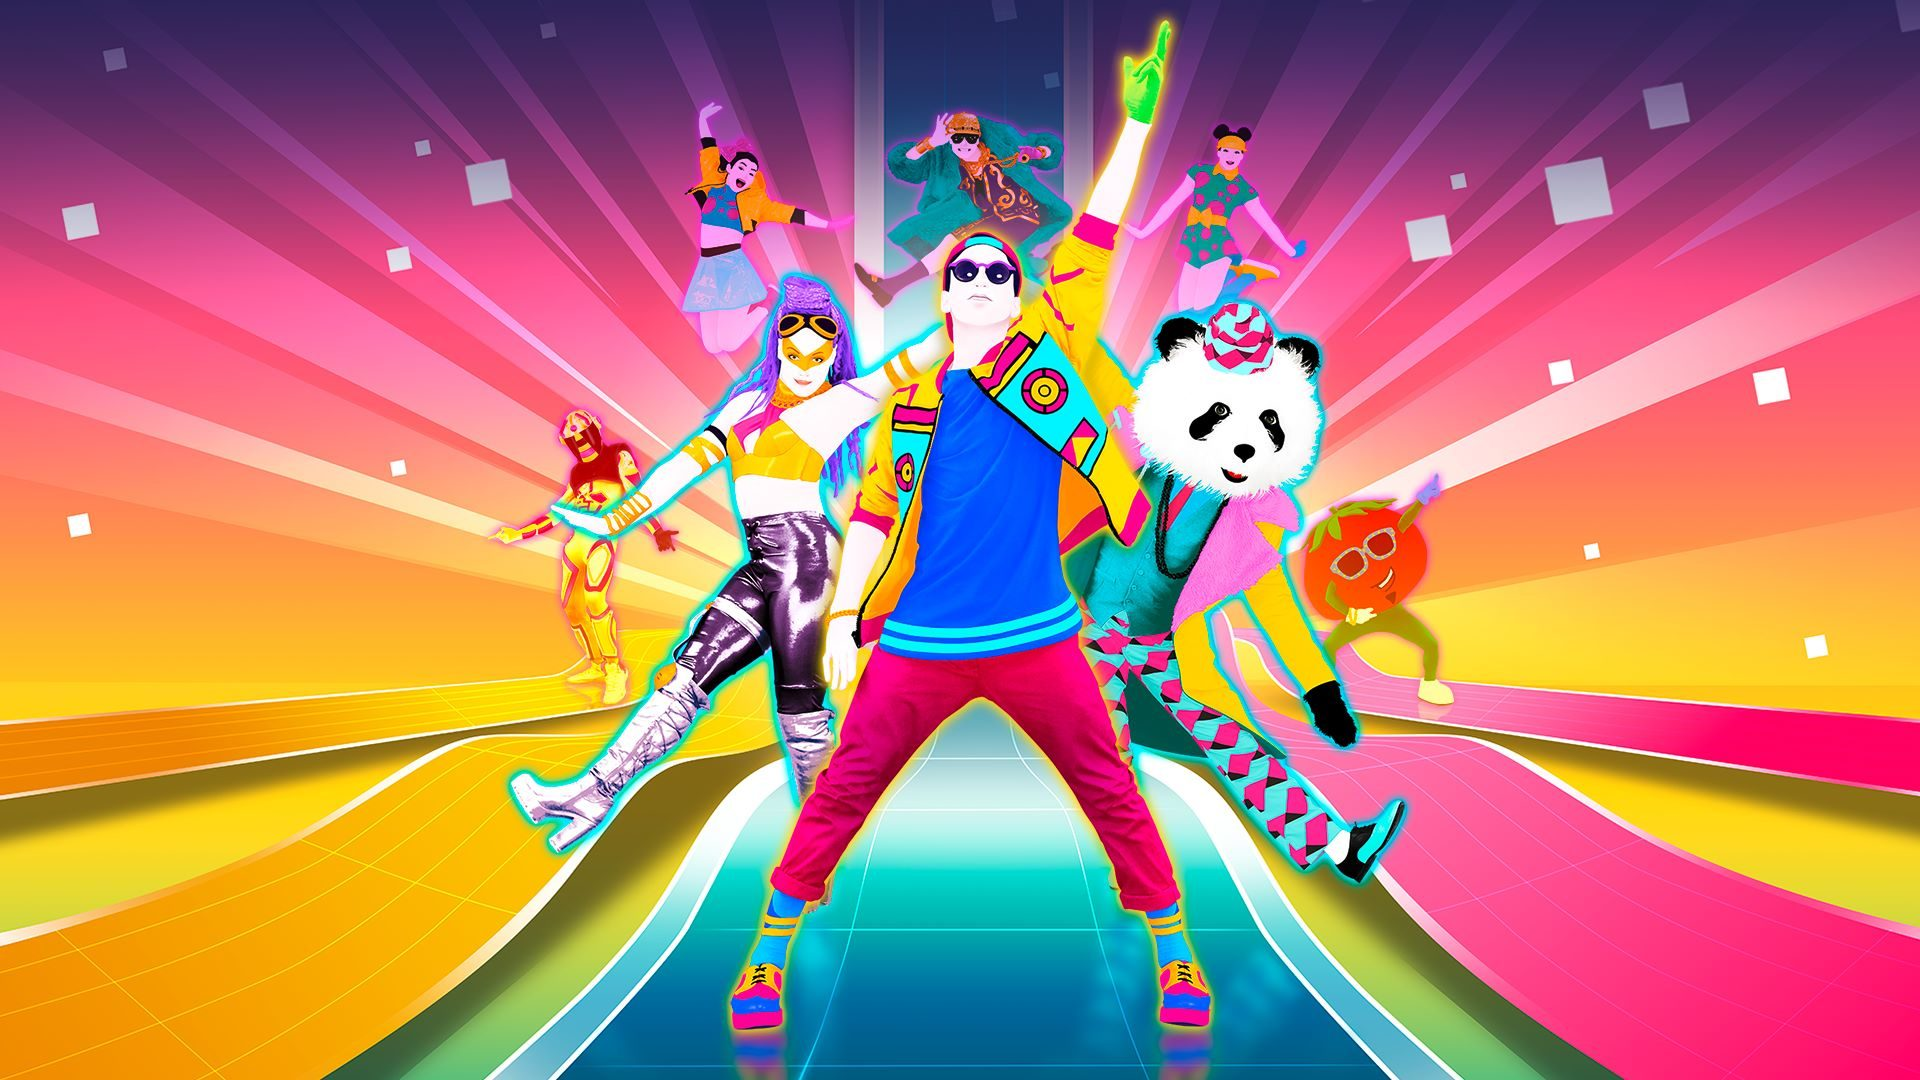 Ubisoft To Shut Down Online Services For Past 'Just Dance' Games On Older Nintendo Consoles